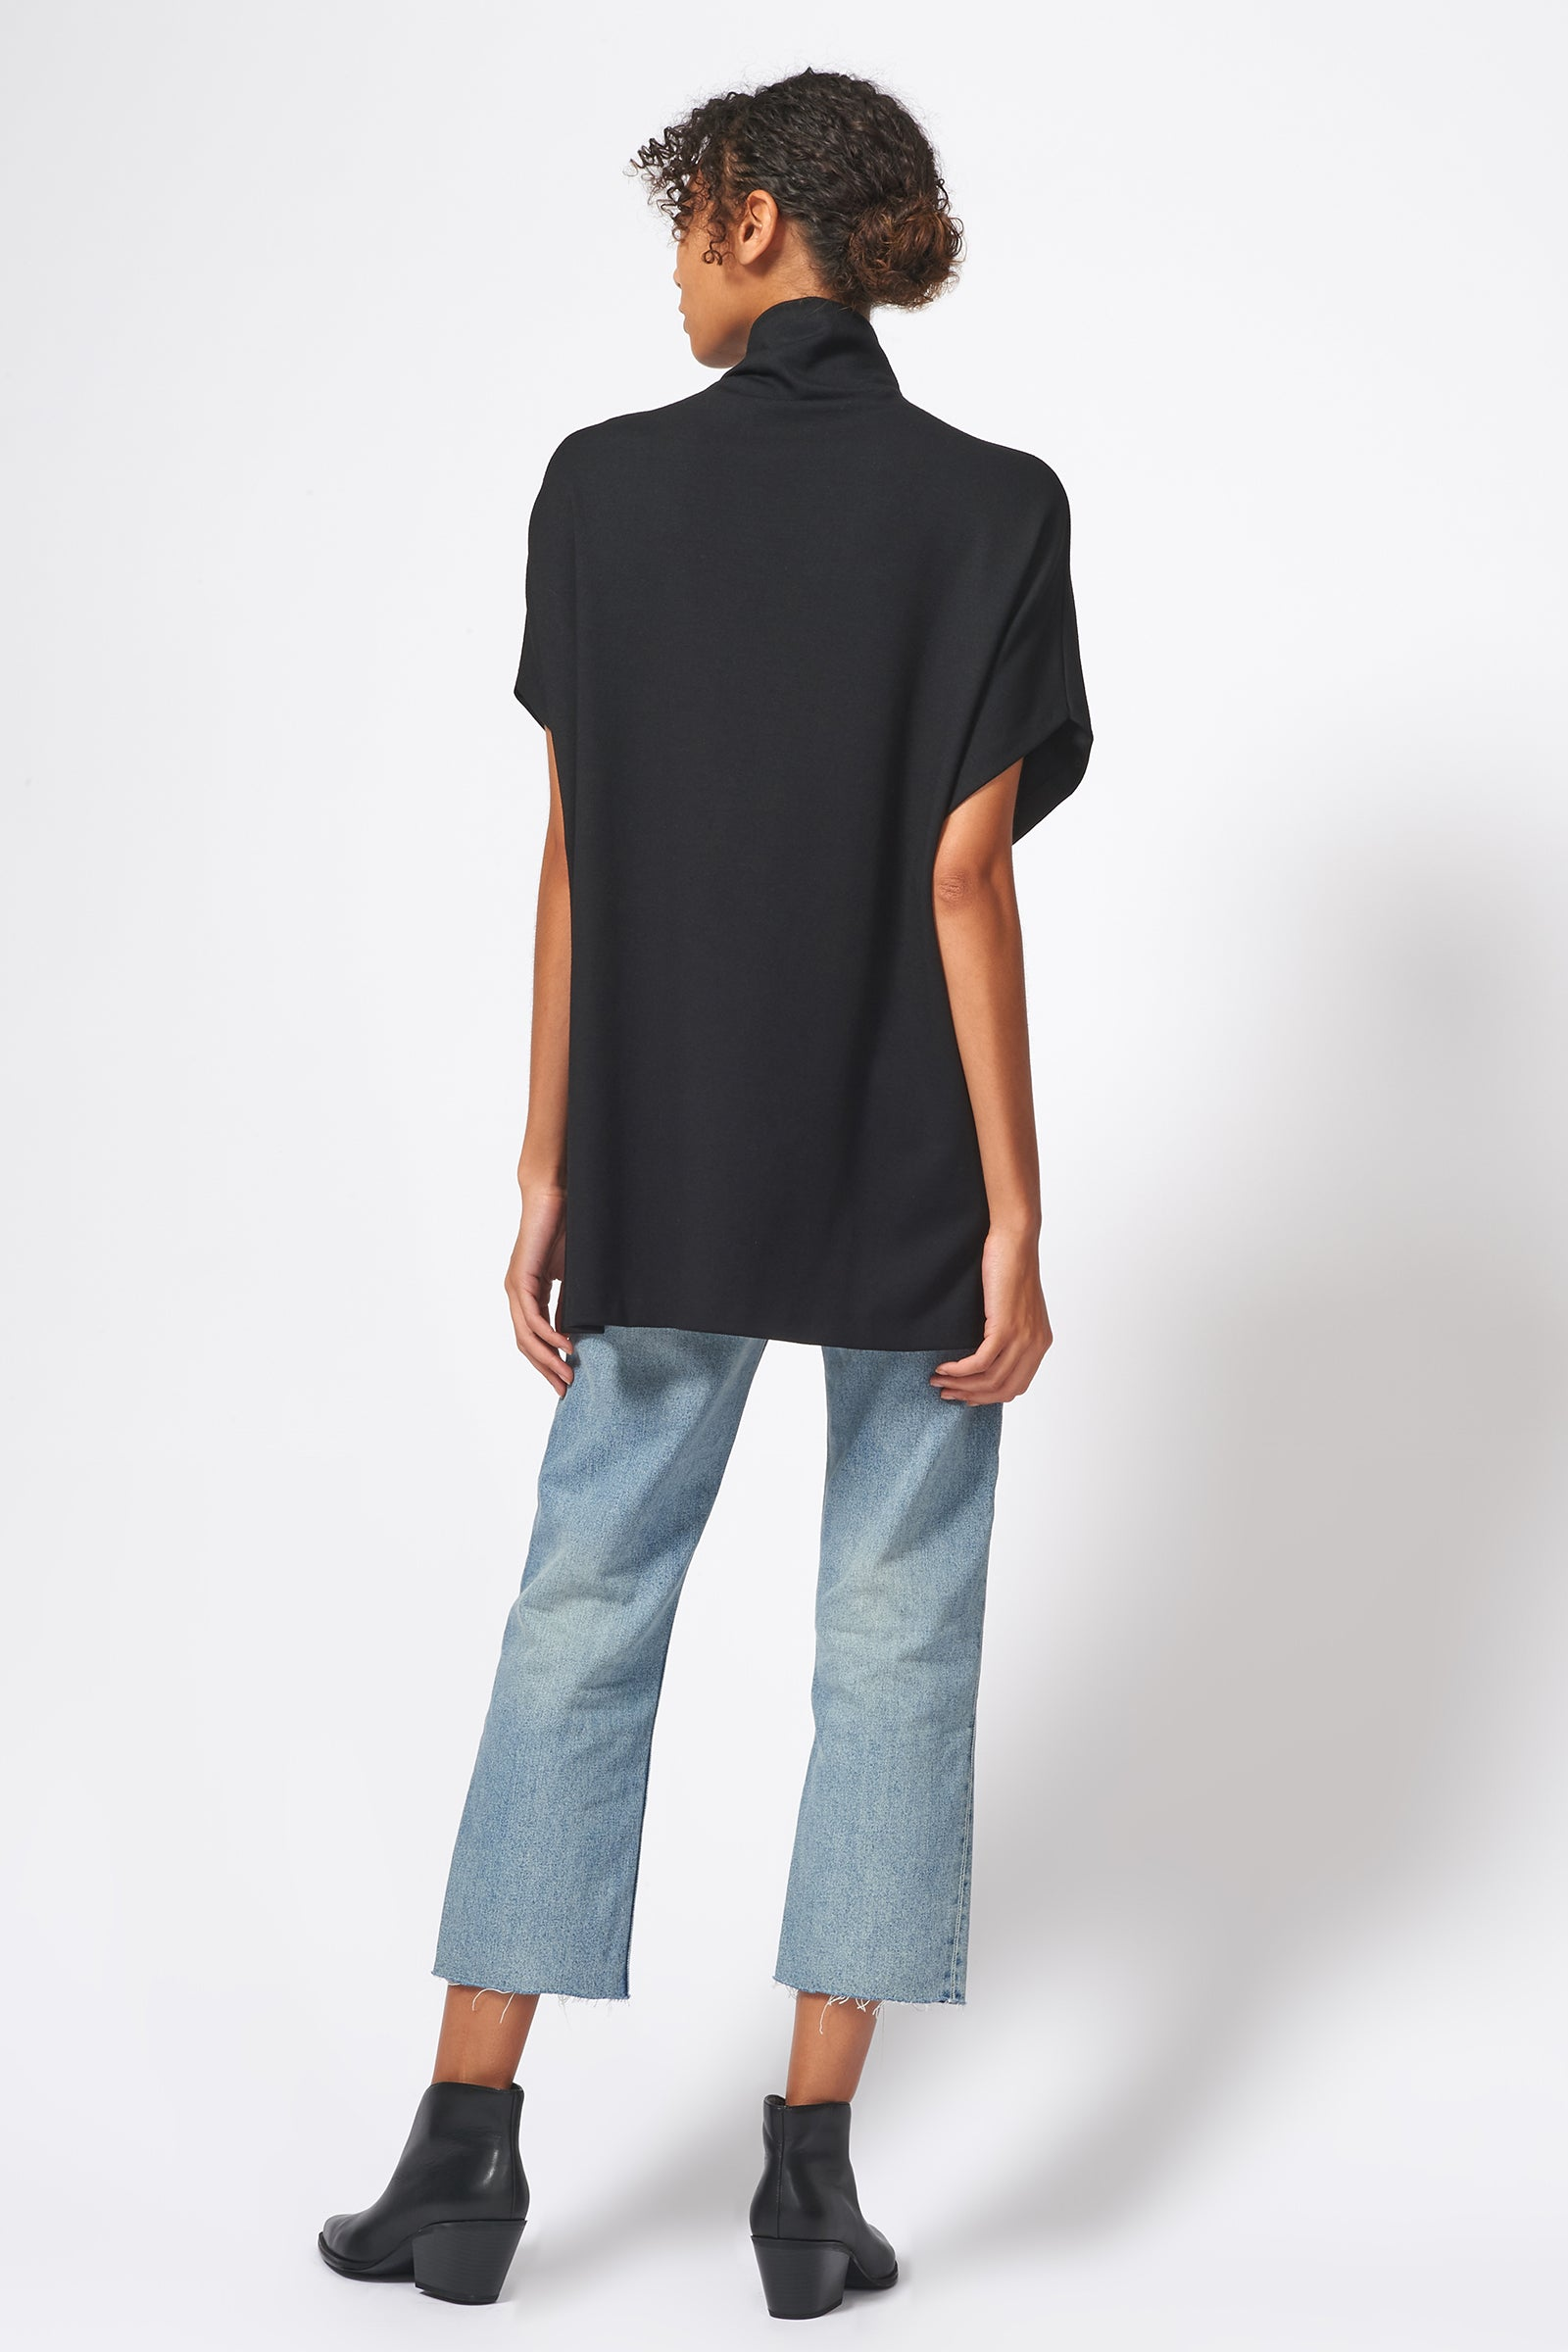 Kal Rieman Ponte Funnelneck in Black on Model Full Back View with Cropped Jeans